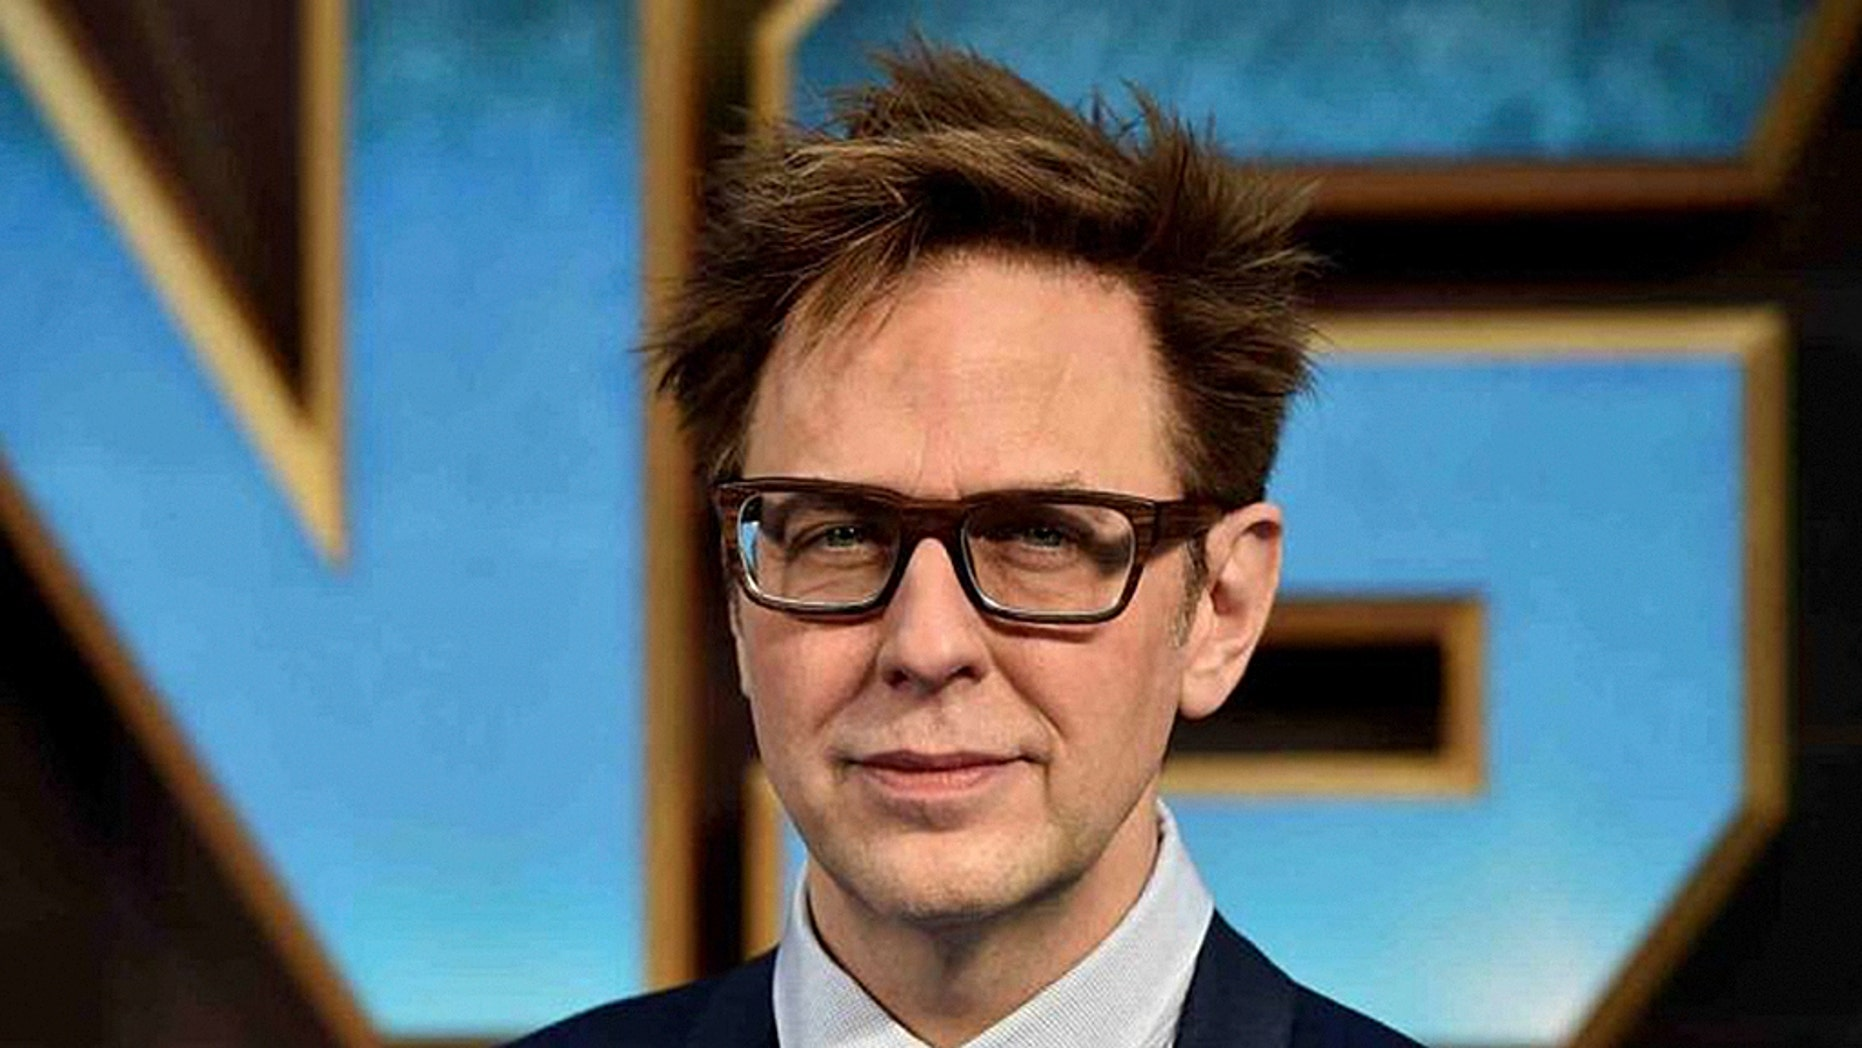 James Gunn was fired by Disney over old tweets that resurfaced.